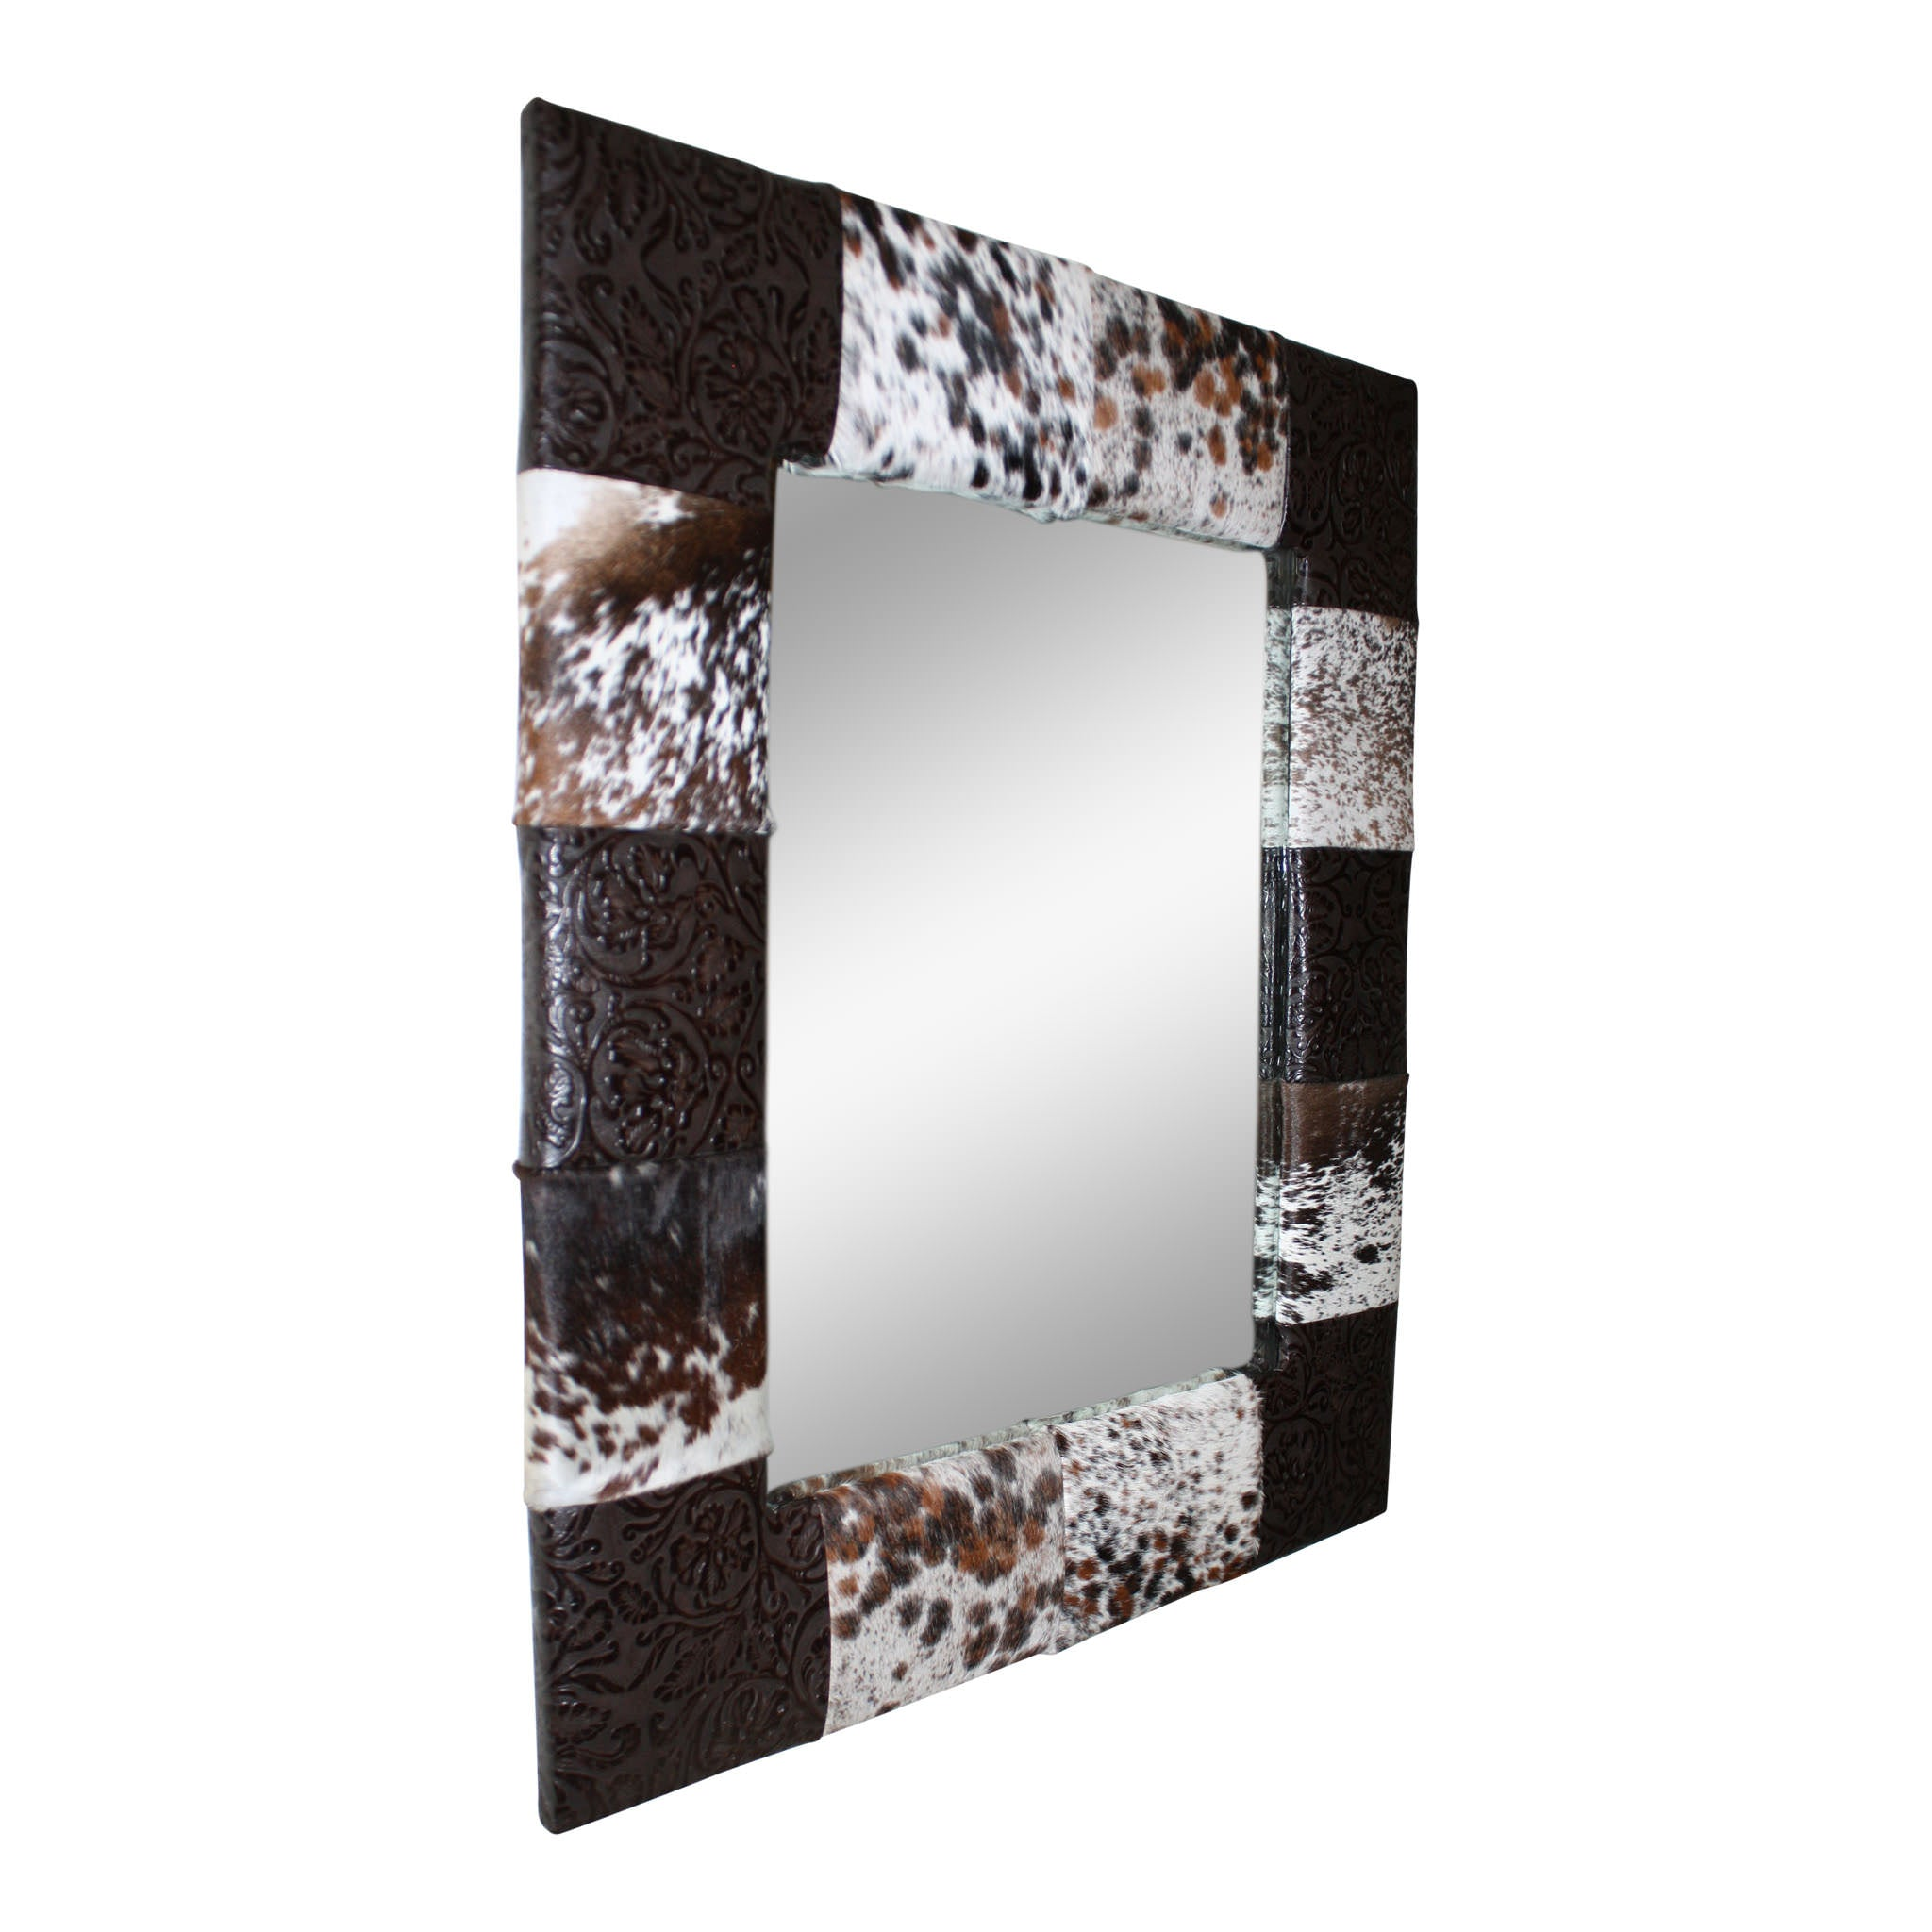 Cowhide and Leather Patchwork Mirror